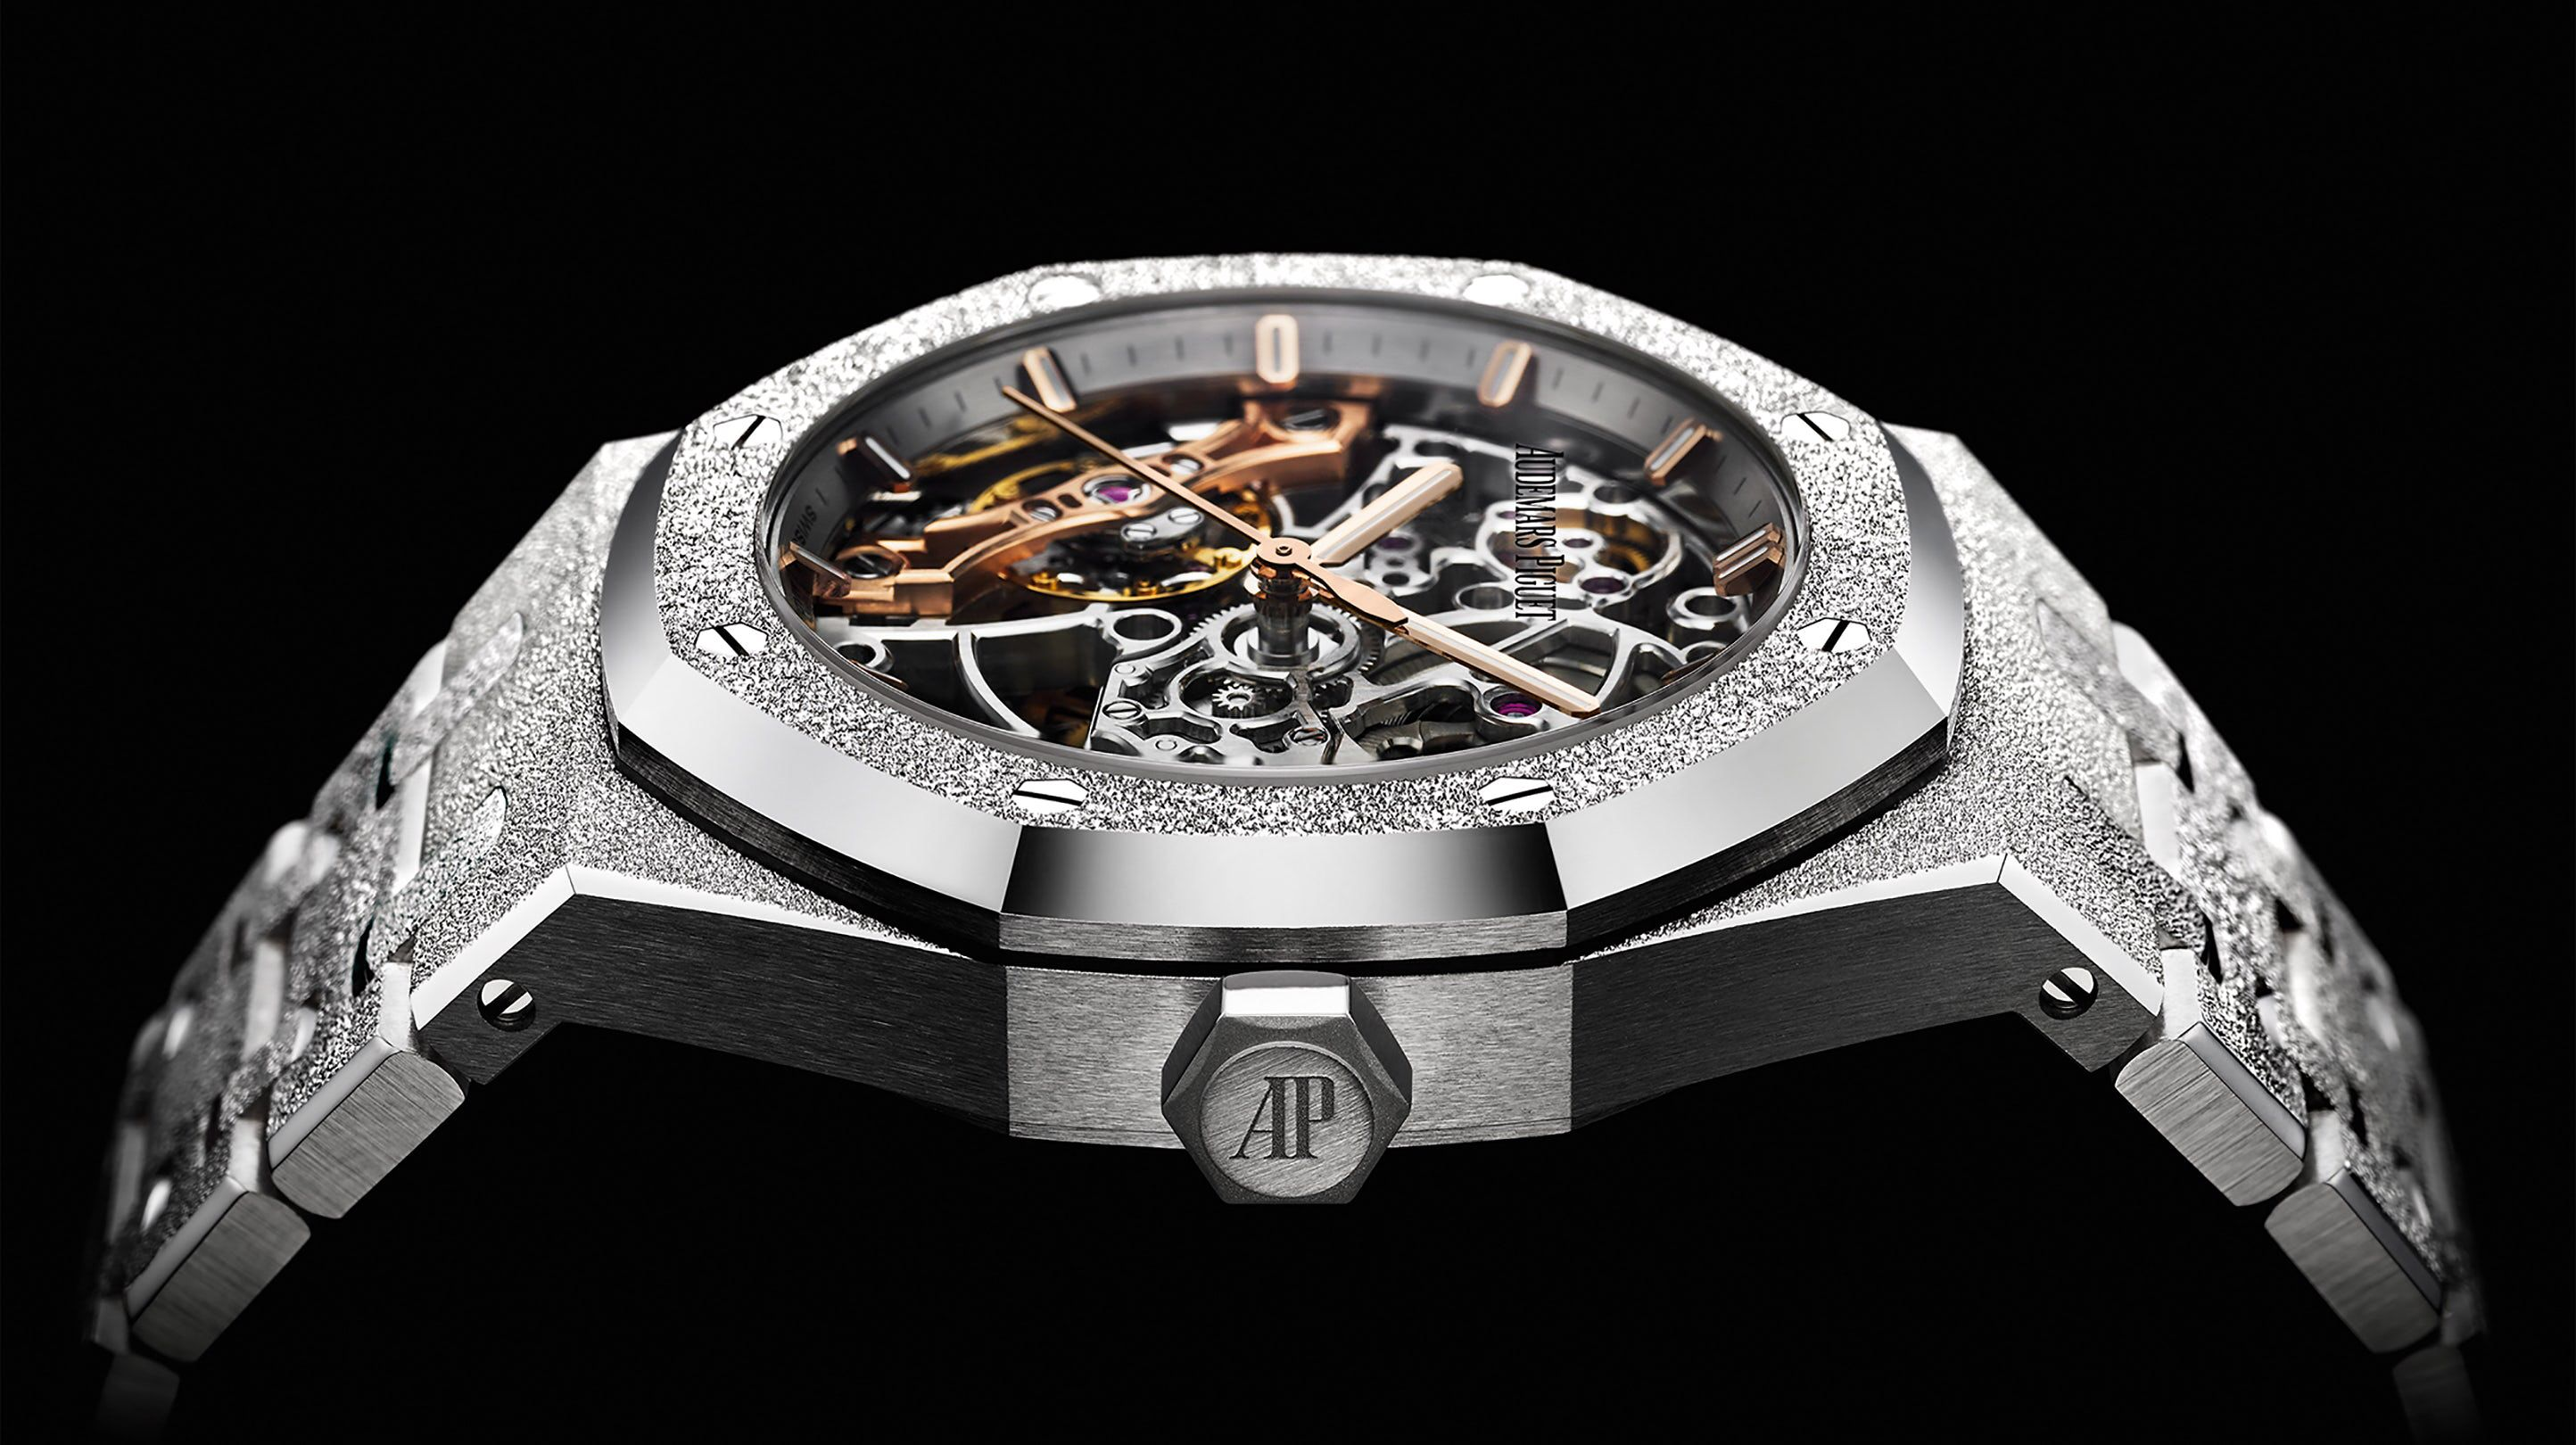 Introducing The Audemars Piguet Frosted Gold Royal Oak Double